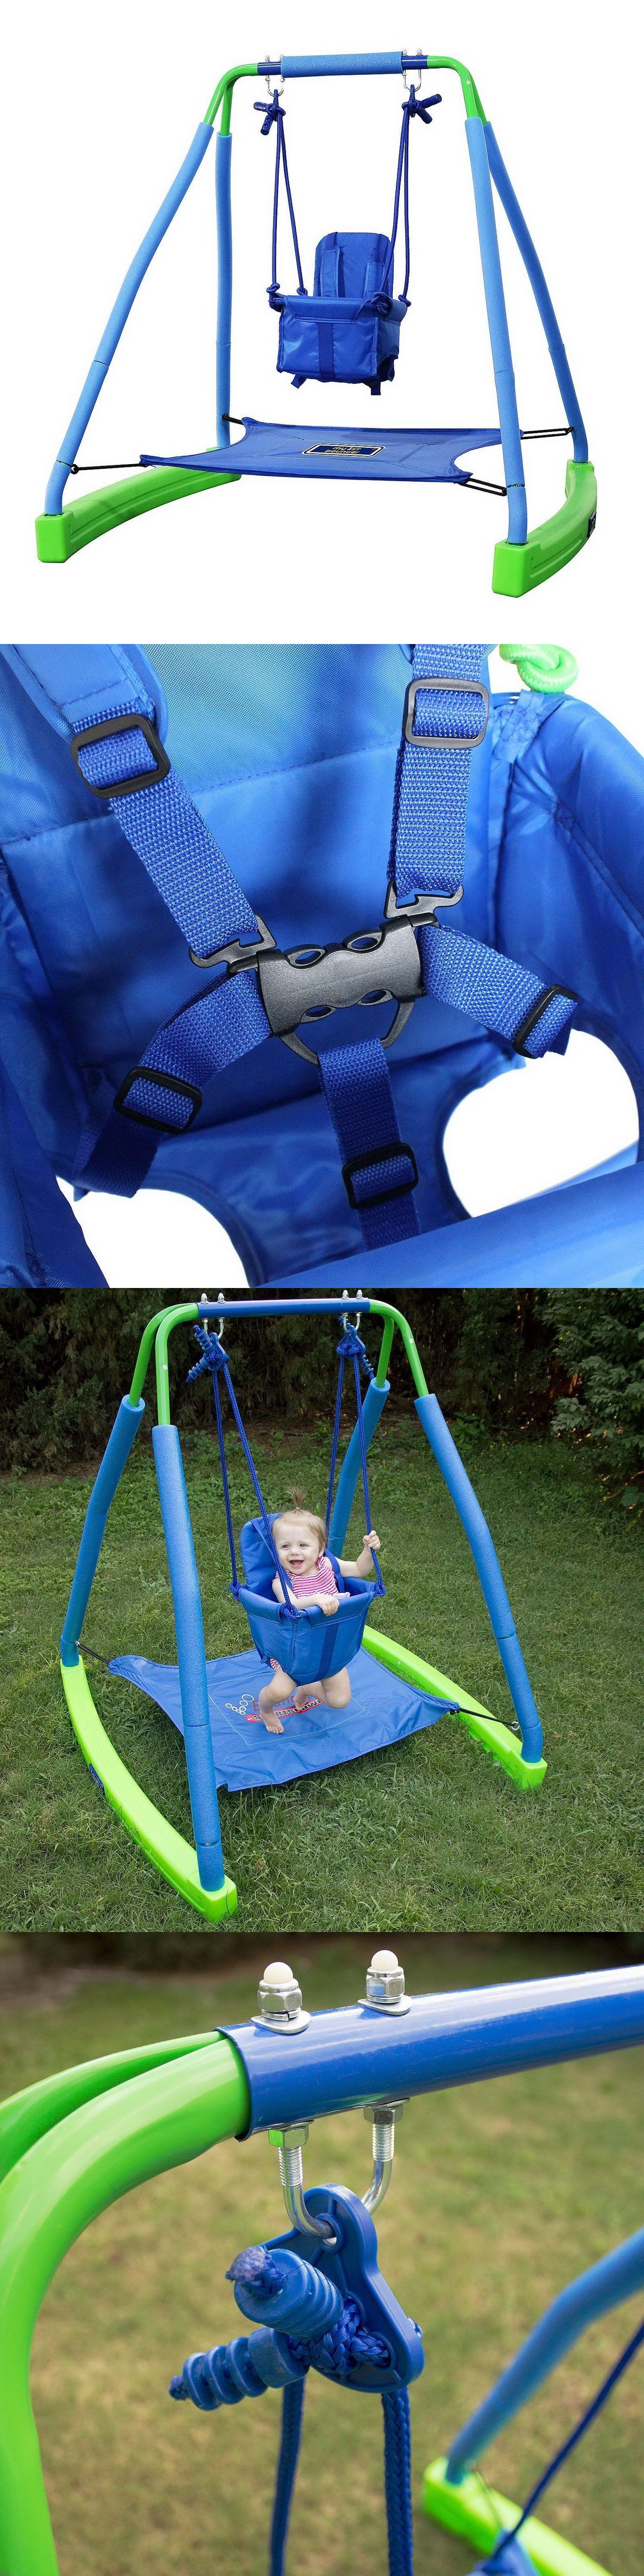 hight resolution of baby swings 2990 my first toddler baby bucket swing with bouncer safety harness age 9 36 months buy it now only 112 95 on ebay